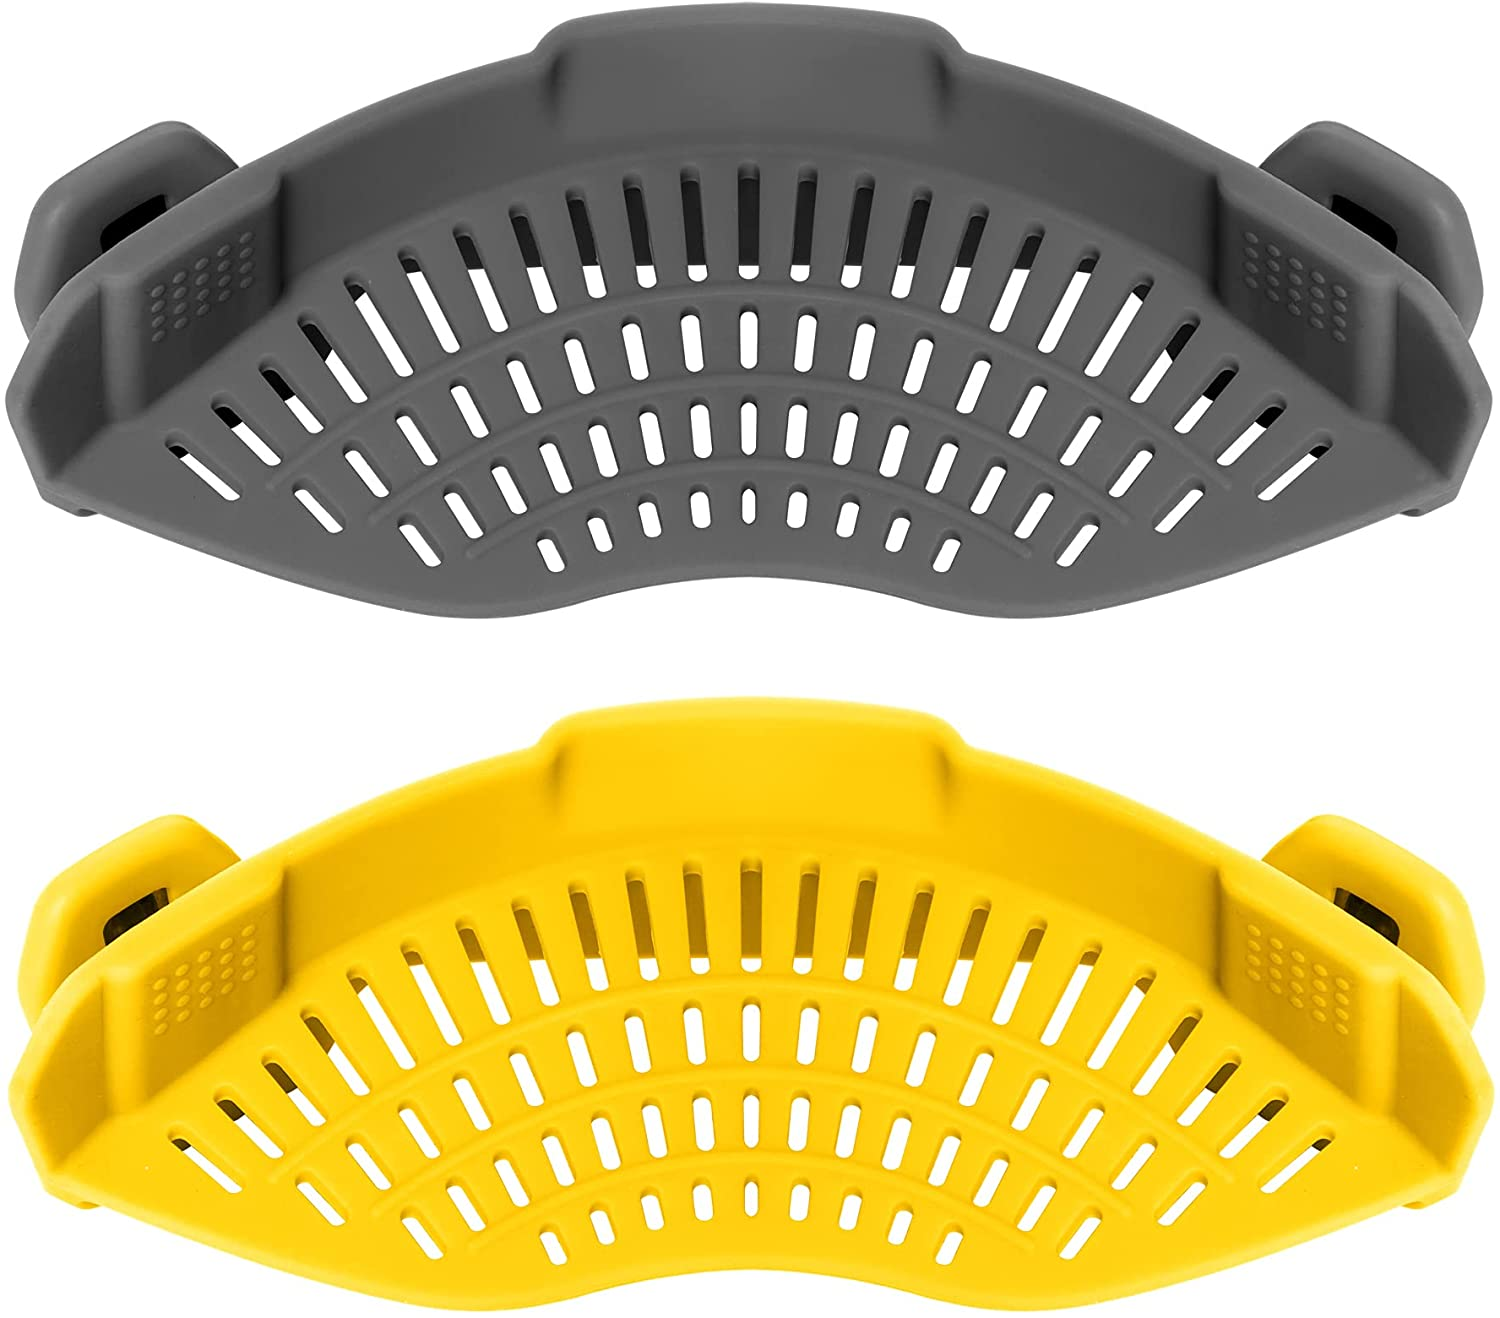 AUOON Clip on Strainer,2PACK Fits All Pots Pans, Silicone Colander, Food Strainer for Pasta, Spaghetti, Ground Beef Grease, Heat Resistant Silicone, Easy to Use and Store, Dishwasher Safe(GrayYellow)